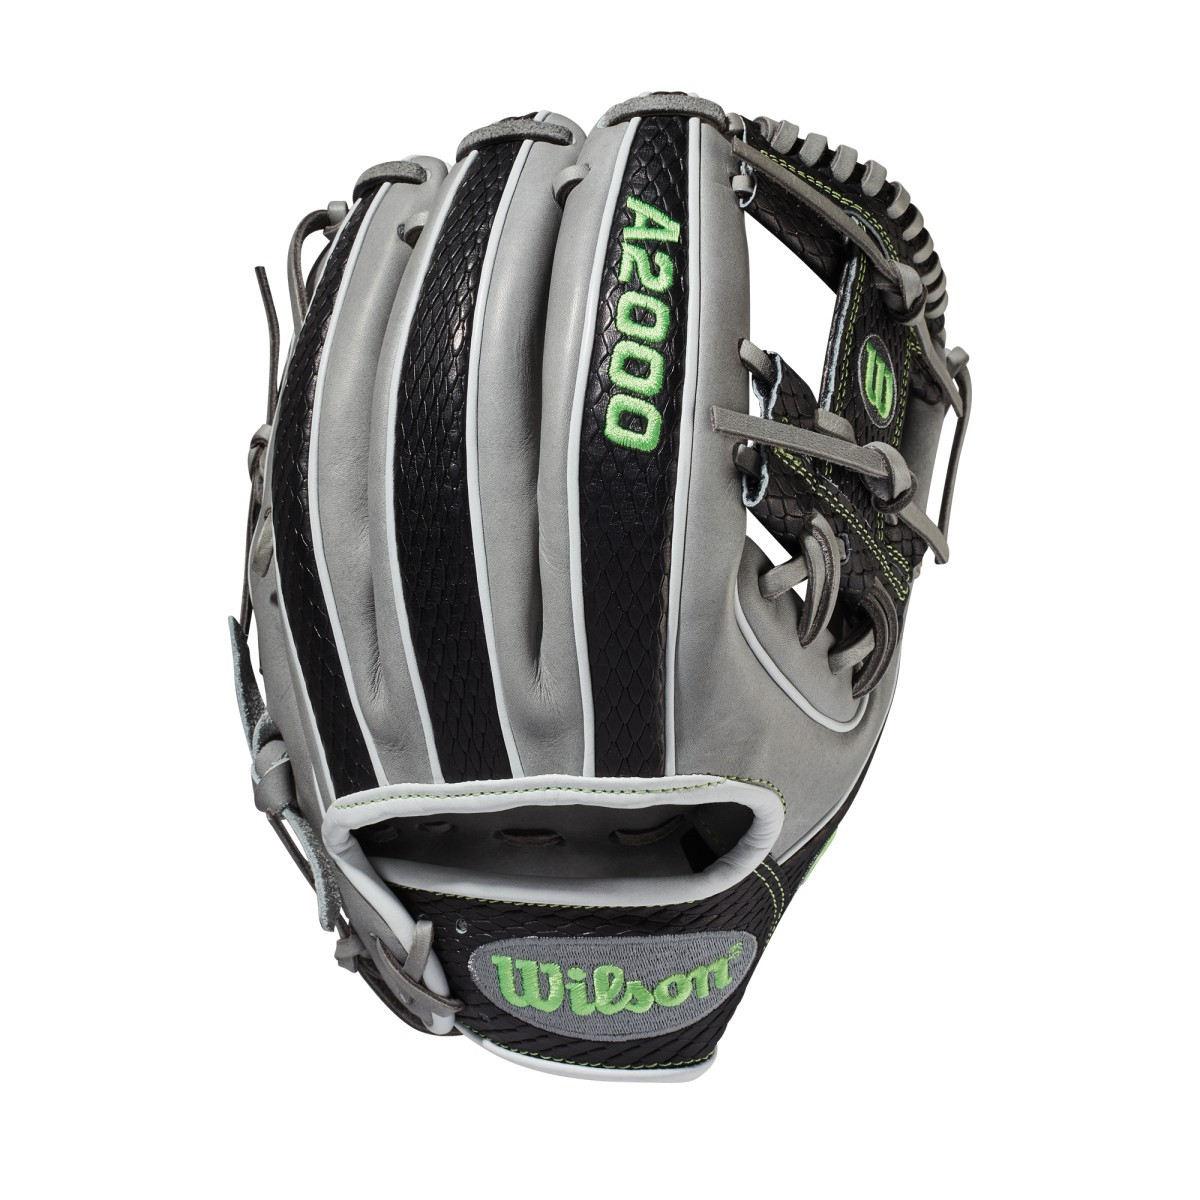 Wilson A2000 April 2019 Glove of the Month 1786 Limited Edition 11 5